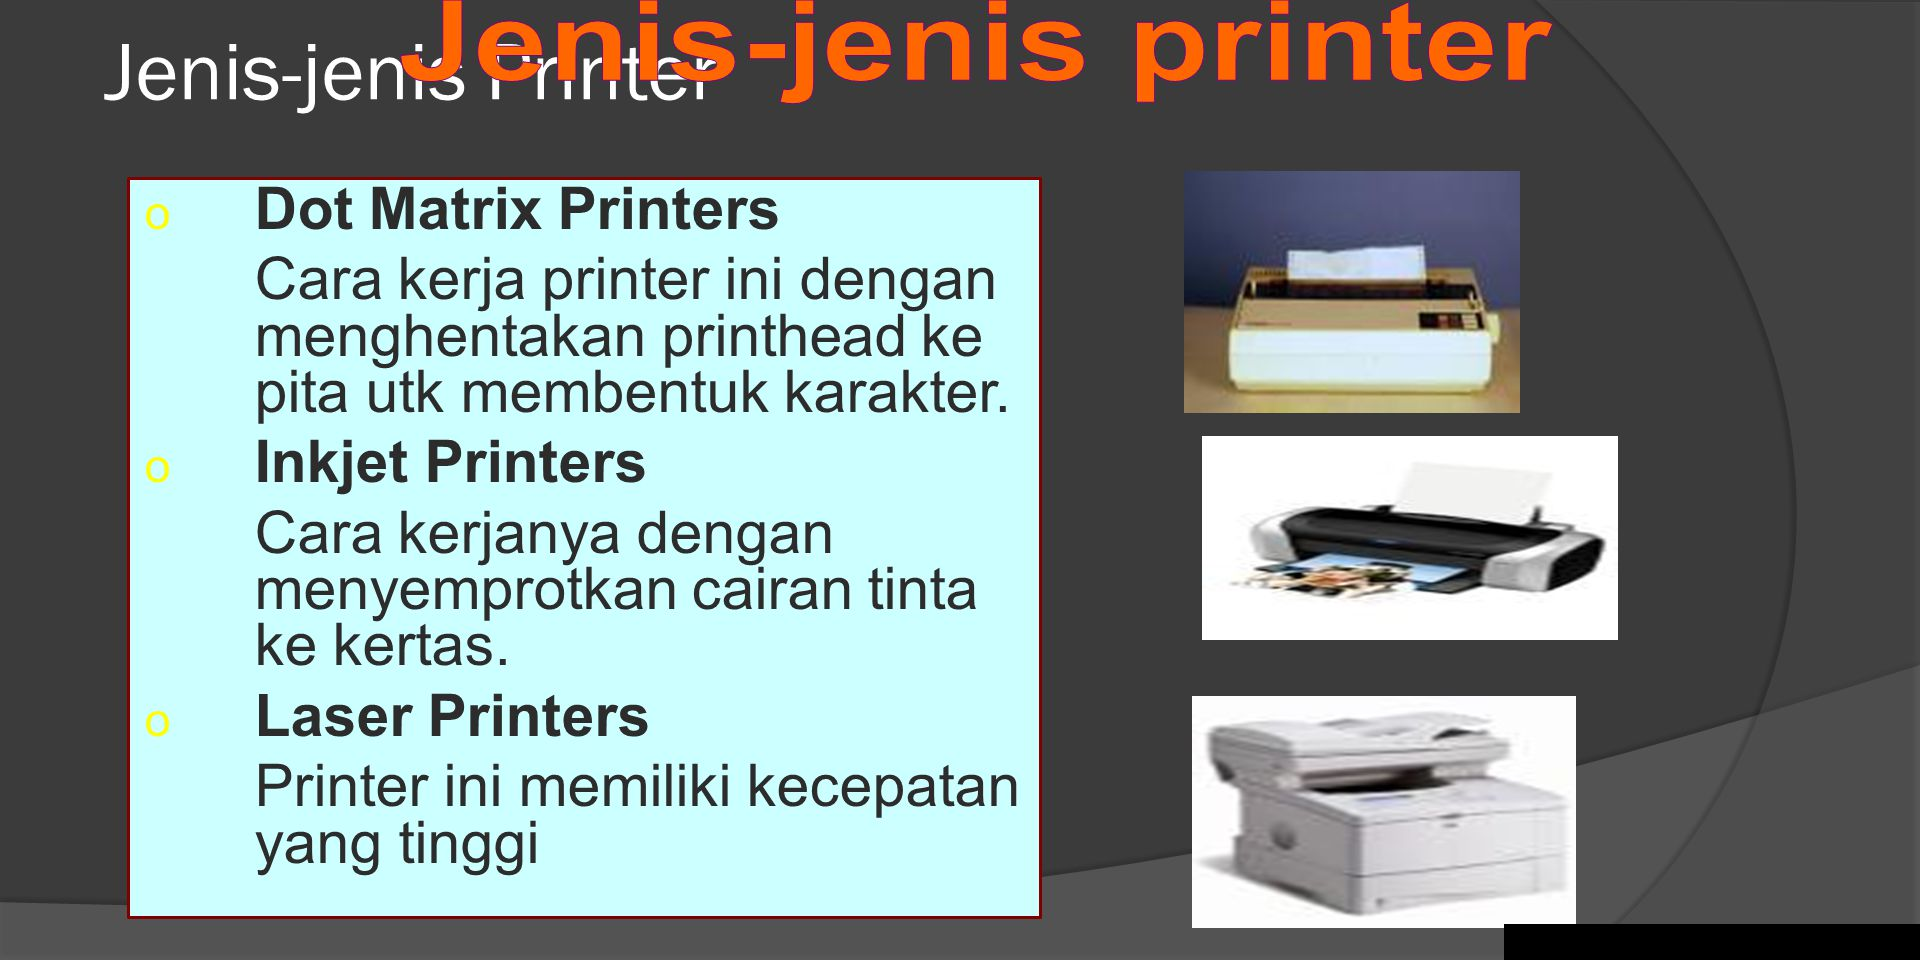 Jenis-jenis printer Jenis-jenis Printer Dot Matrix Printers